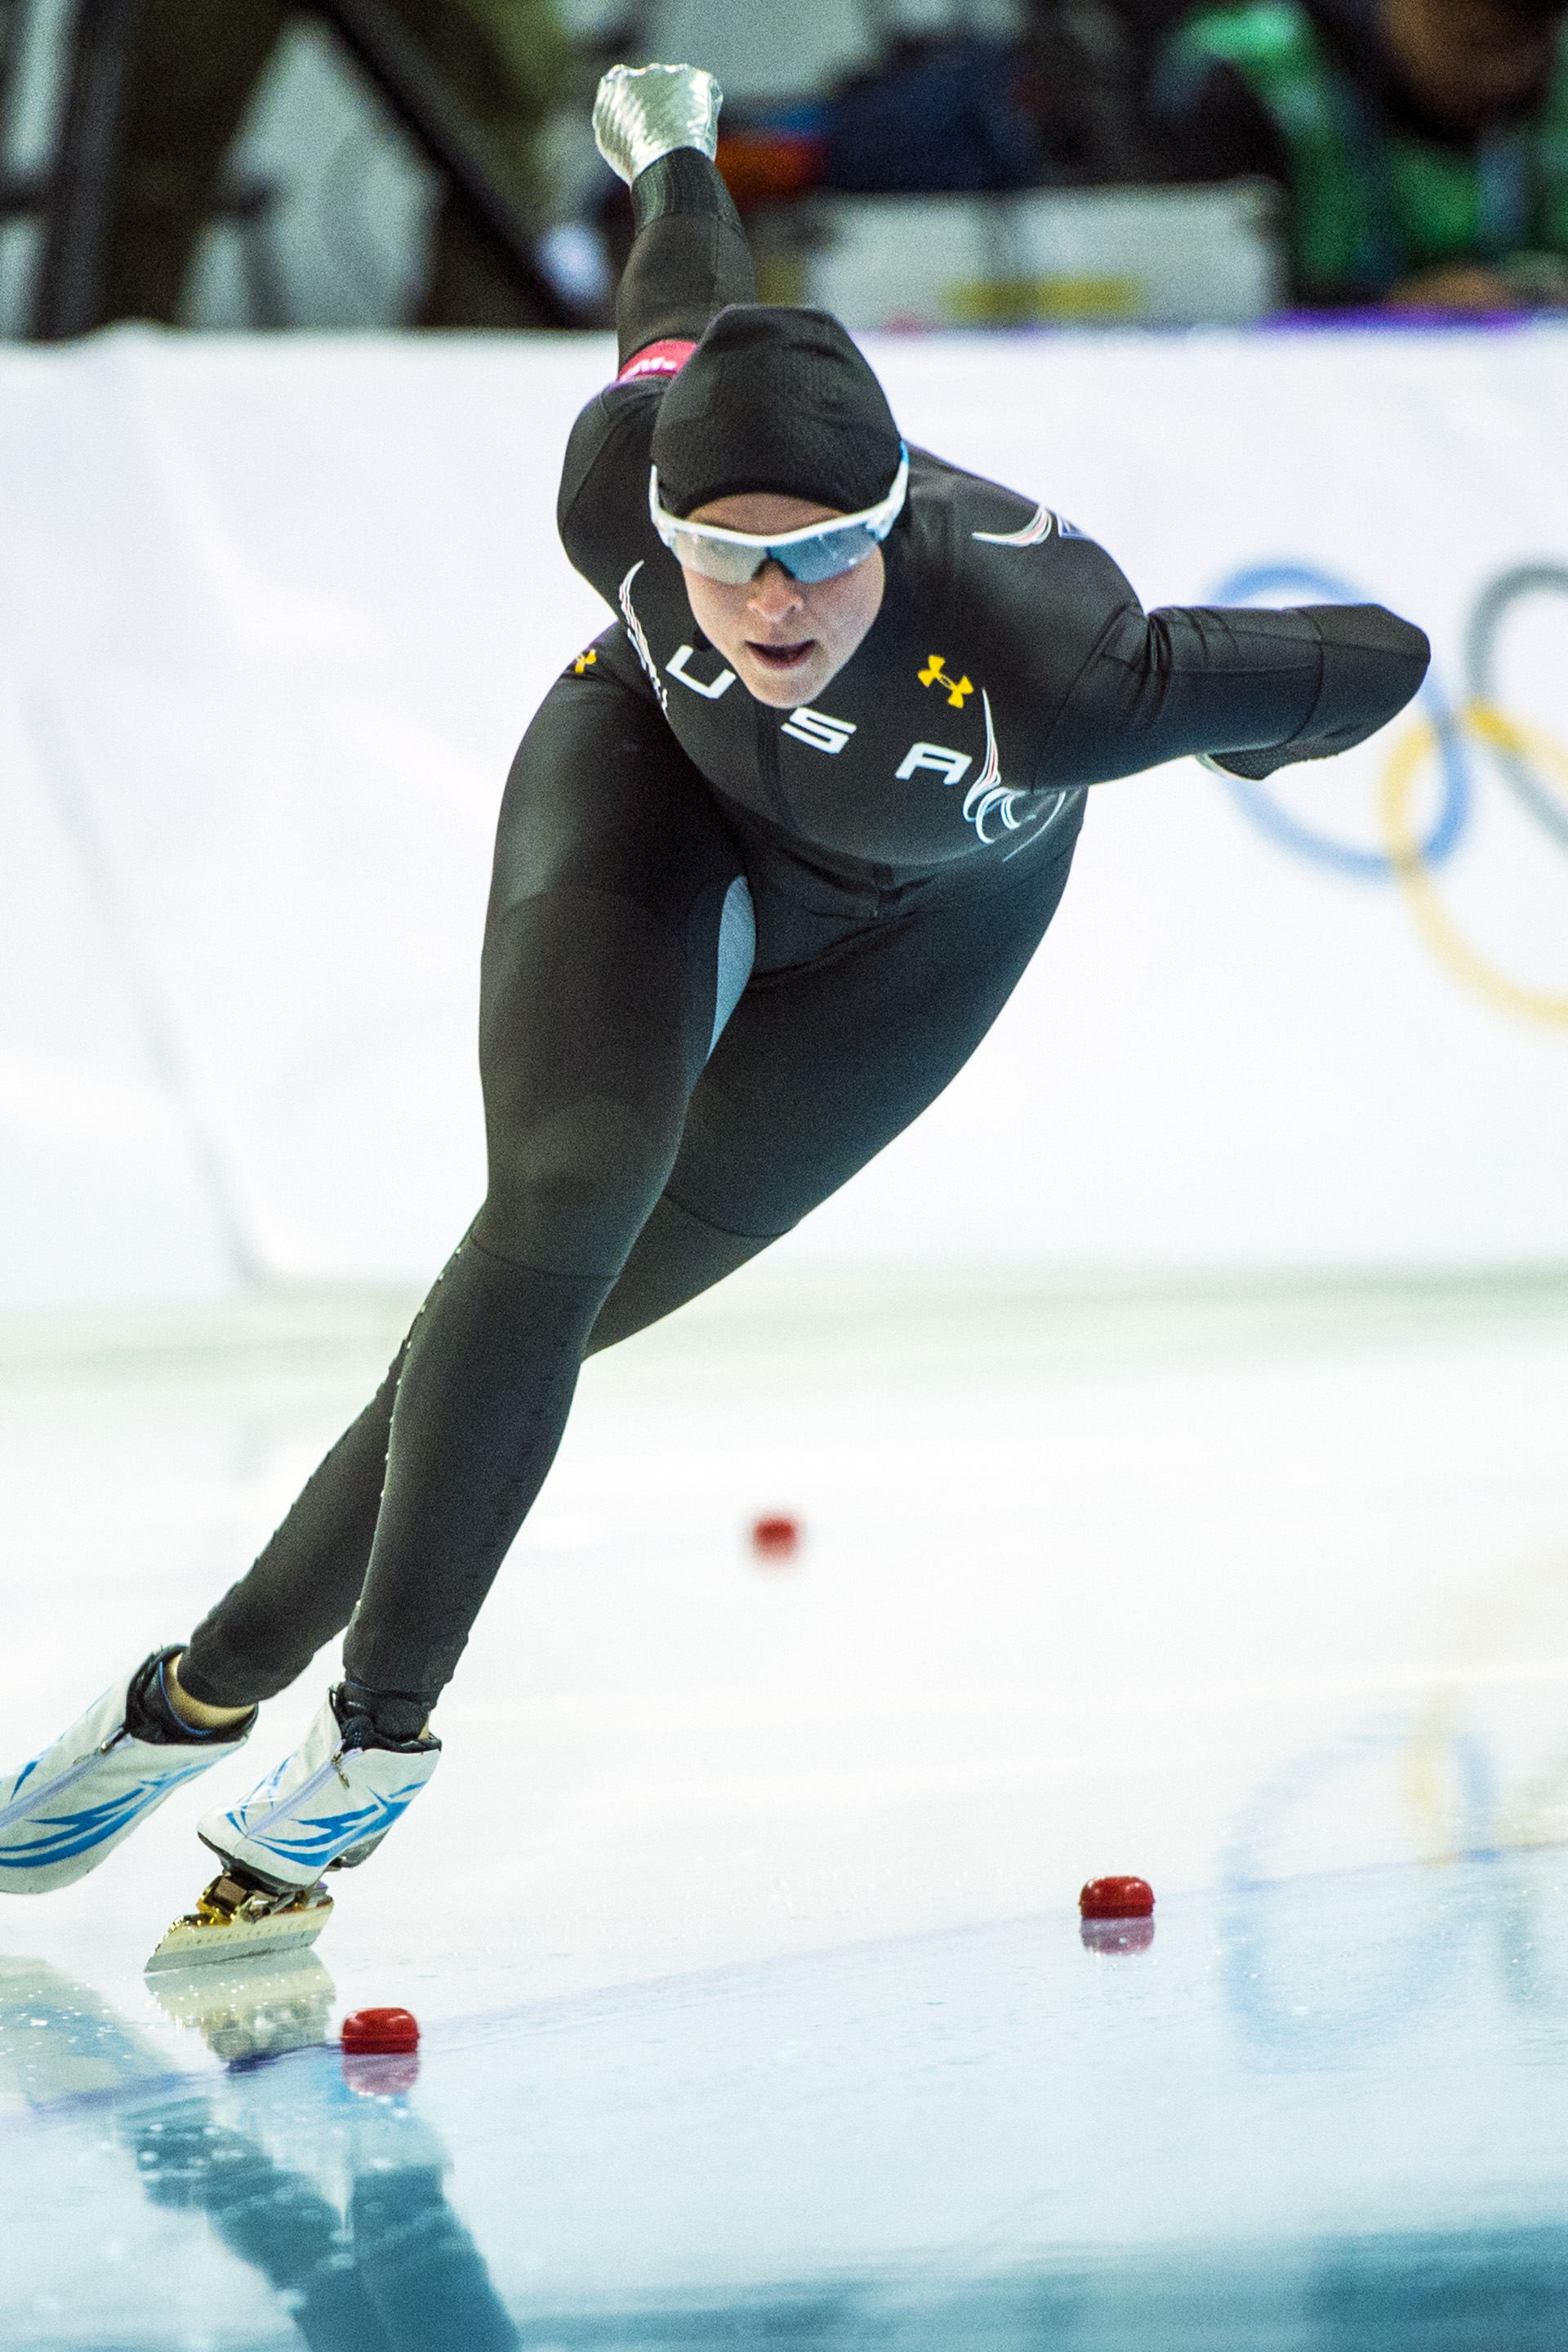 Brittany Bowe, of West Jordan, competes in the women's 1,000 meter speed skating race at Adler Arena Skating Center in the during the 2014 Sochi Olympics Thursday February 13, 2014. Bowe finished in eighth place with a time of 1:15.47.  (Photo by Chris Detrick/The Salt Lake Tribune)